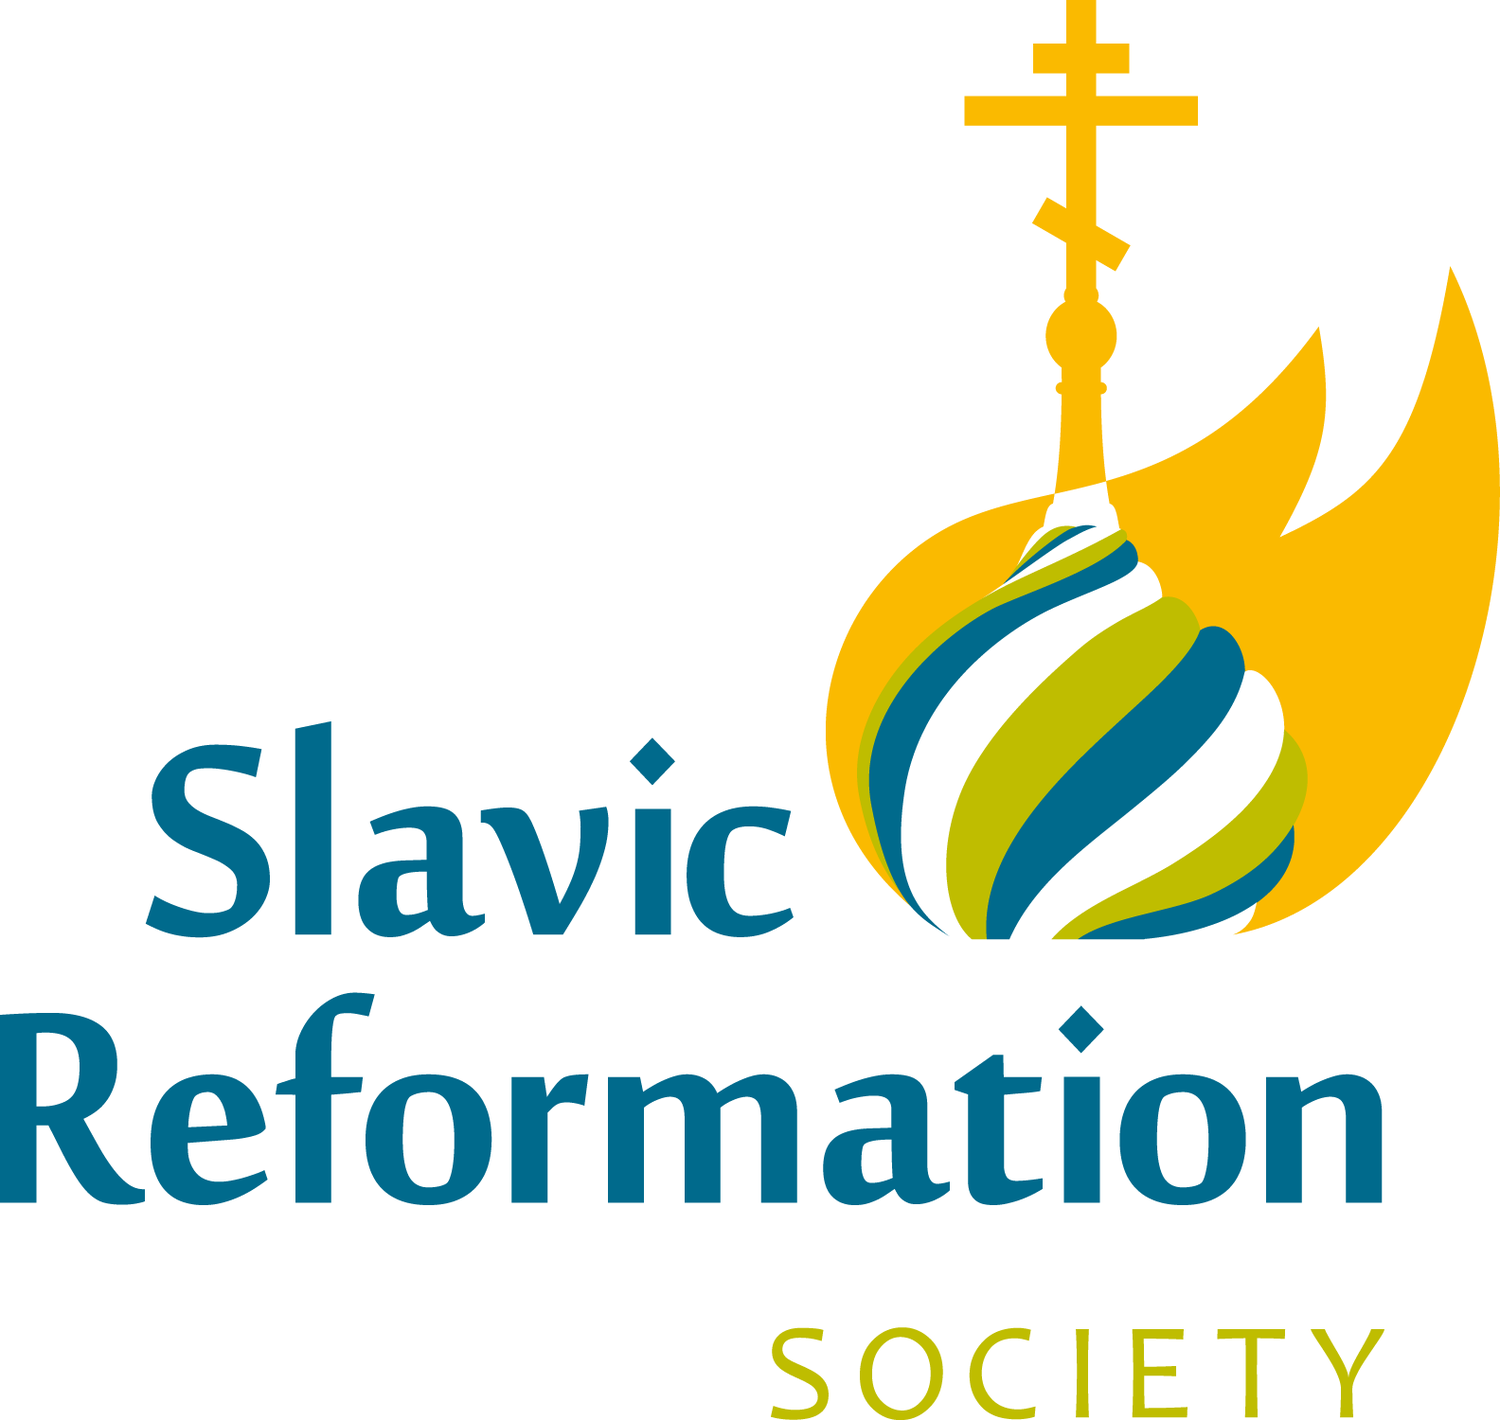 Slavic Reformation Society